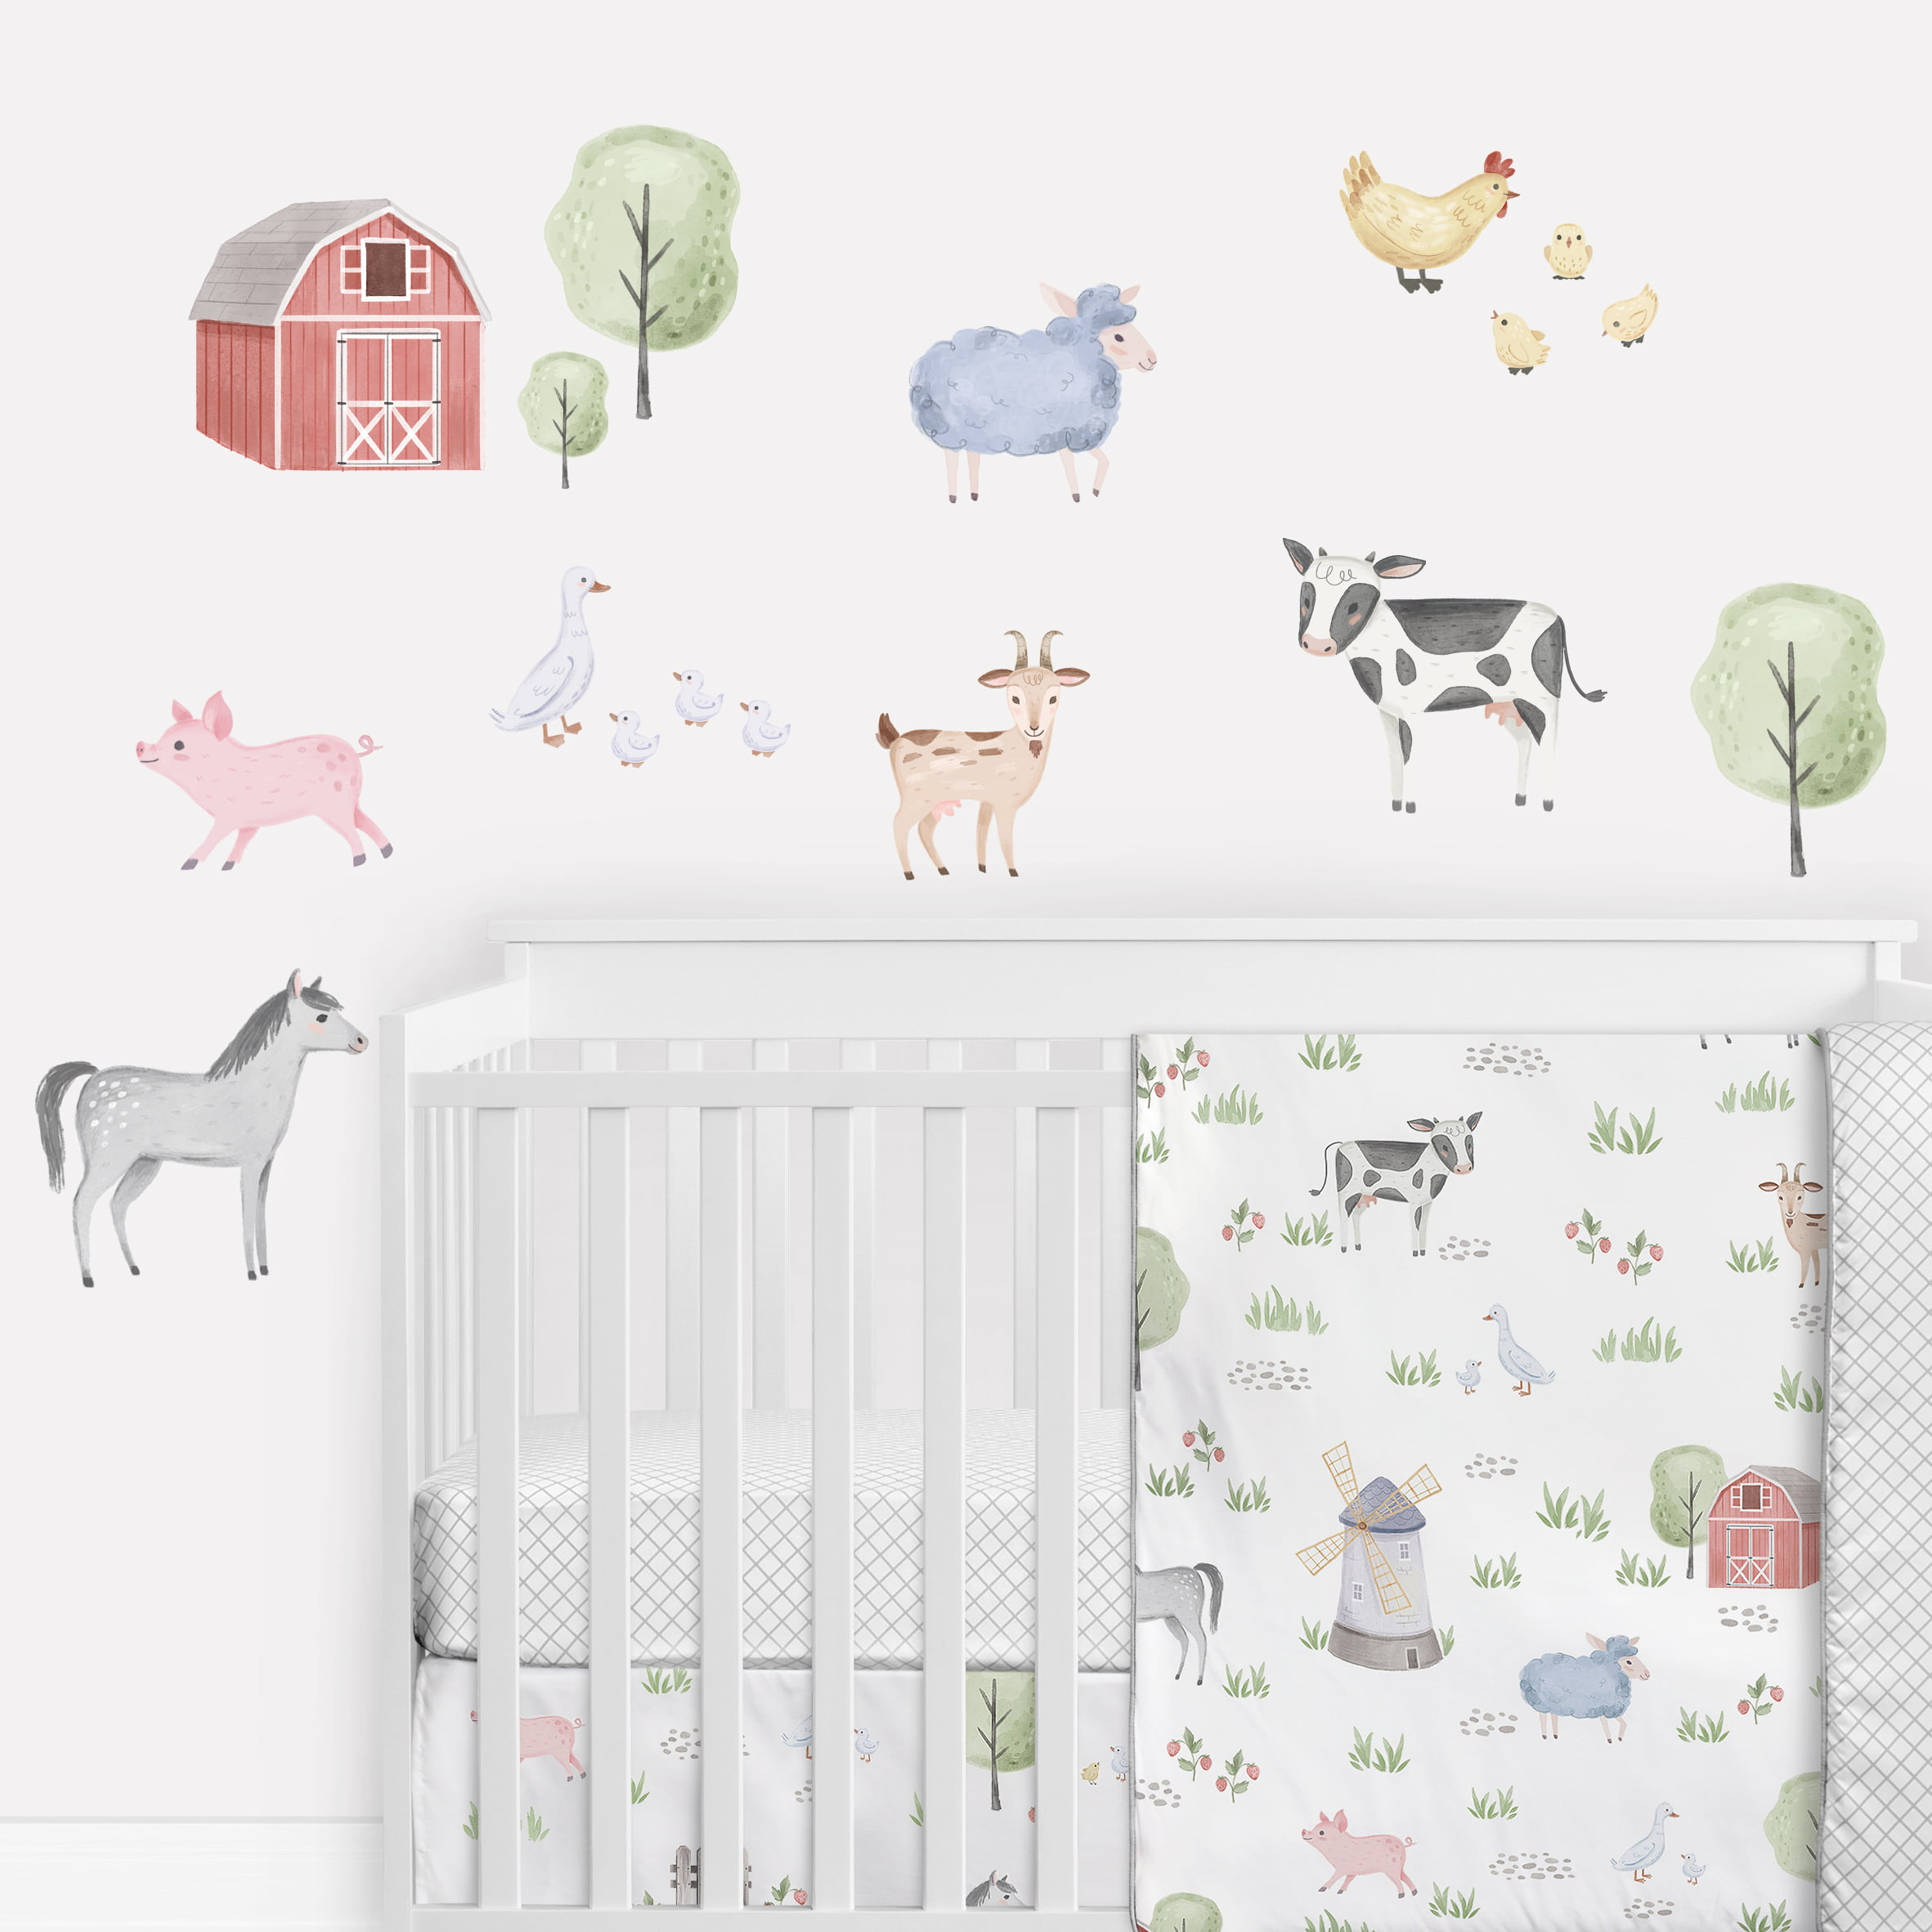 Sweet Jojo Designs Farm Animals Large Peel And Stick Wall Decal Stickers Art Nursery Decor Mural Set Of 4 Sheets Watercolor Farmhouse Barn Horse Cow Sheep Pig Chicken Sheep Goat